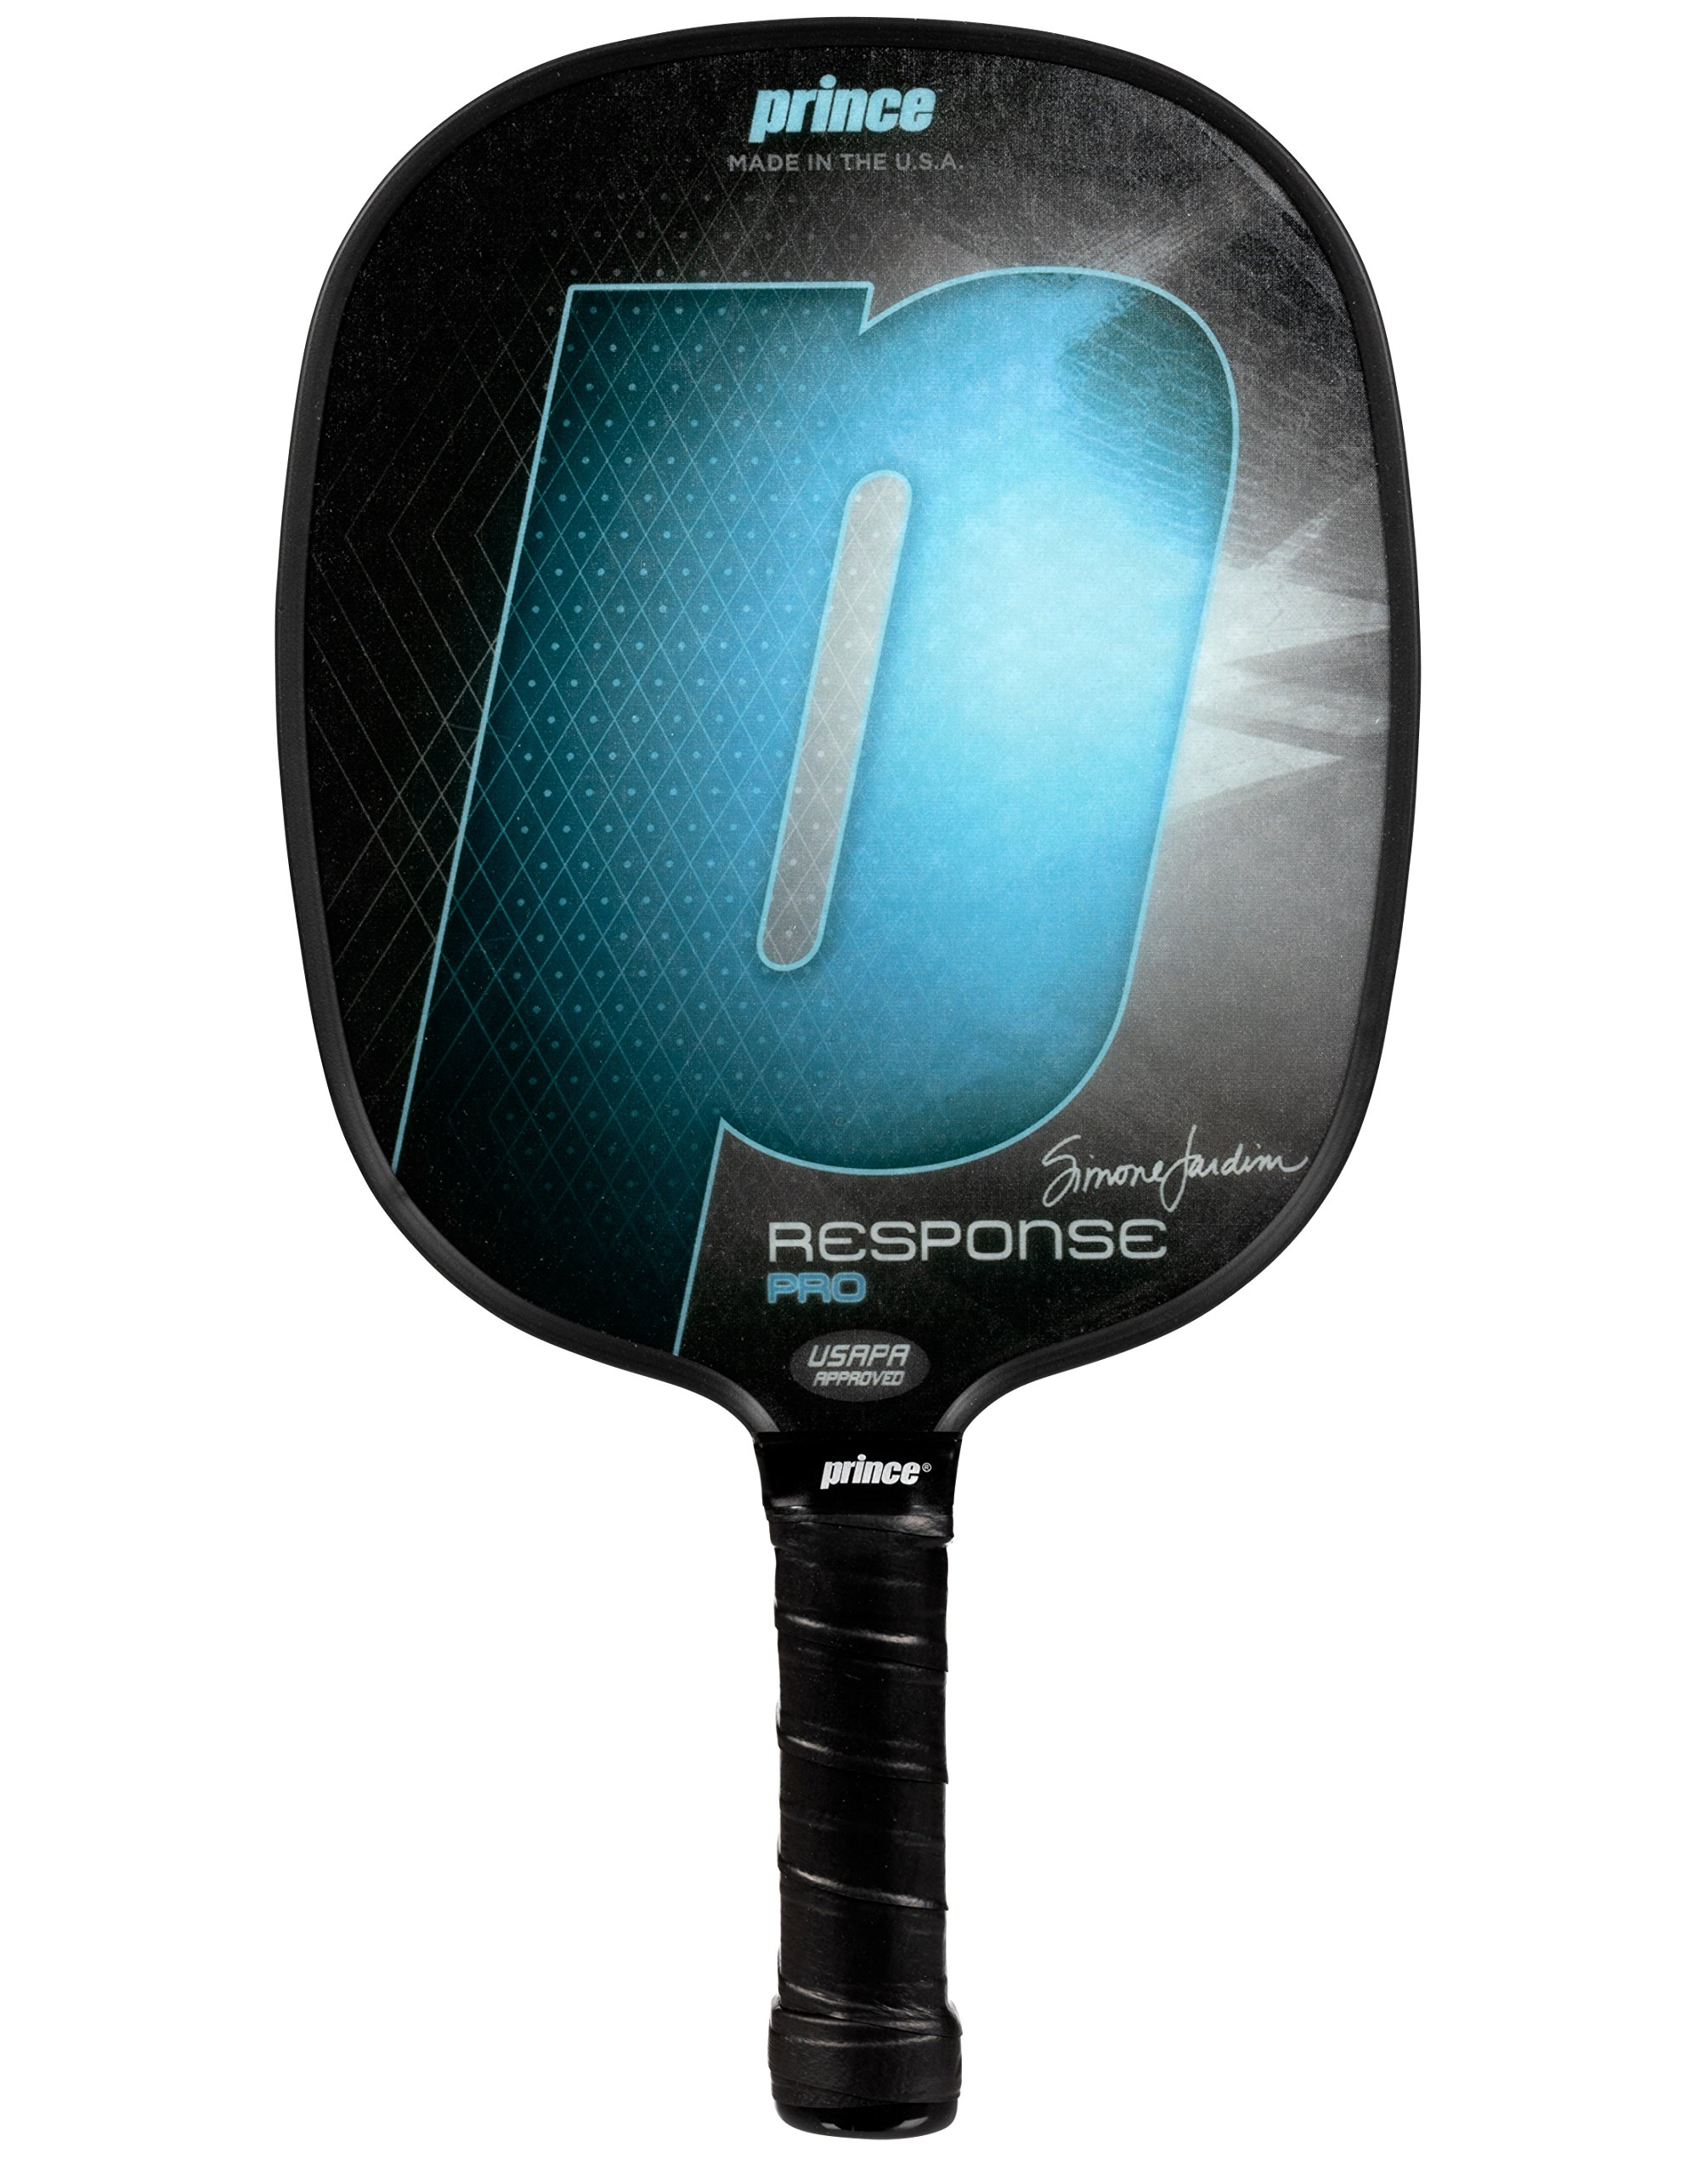 Prince Response Pro Pickleball Paddle | Blue | 4 1/8'' Small Grip | Light Weight